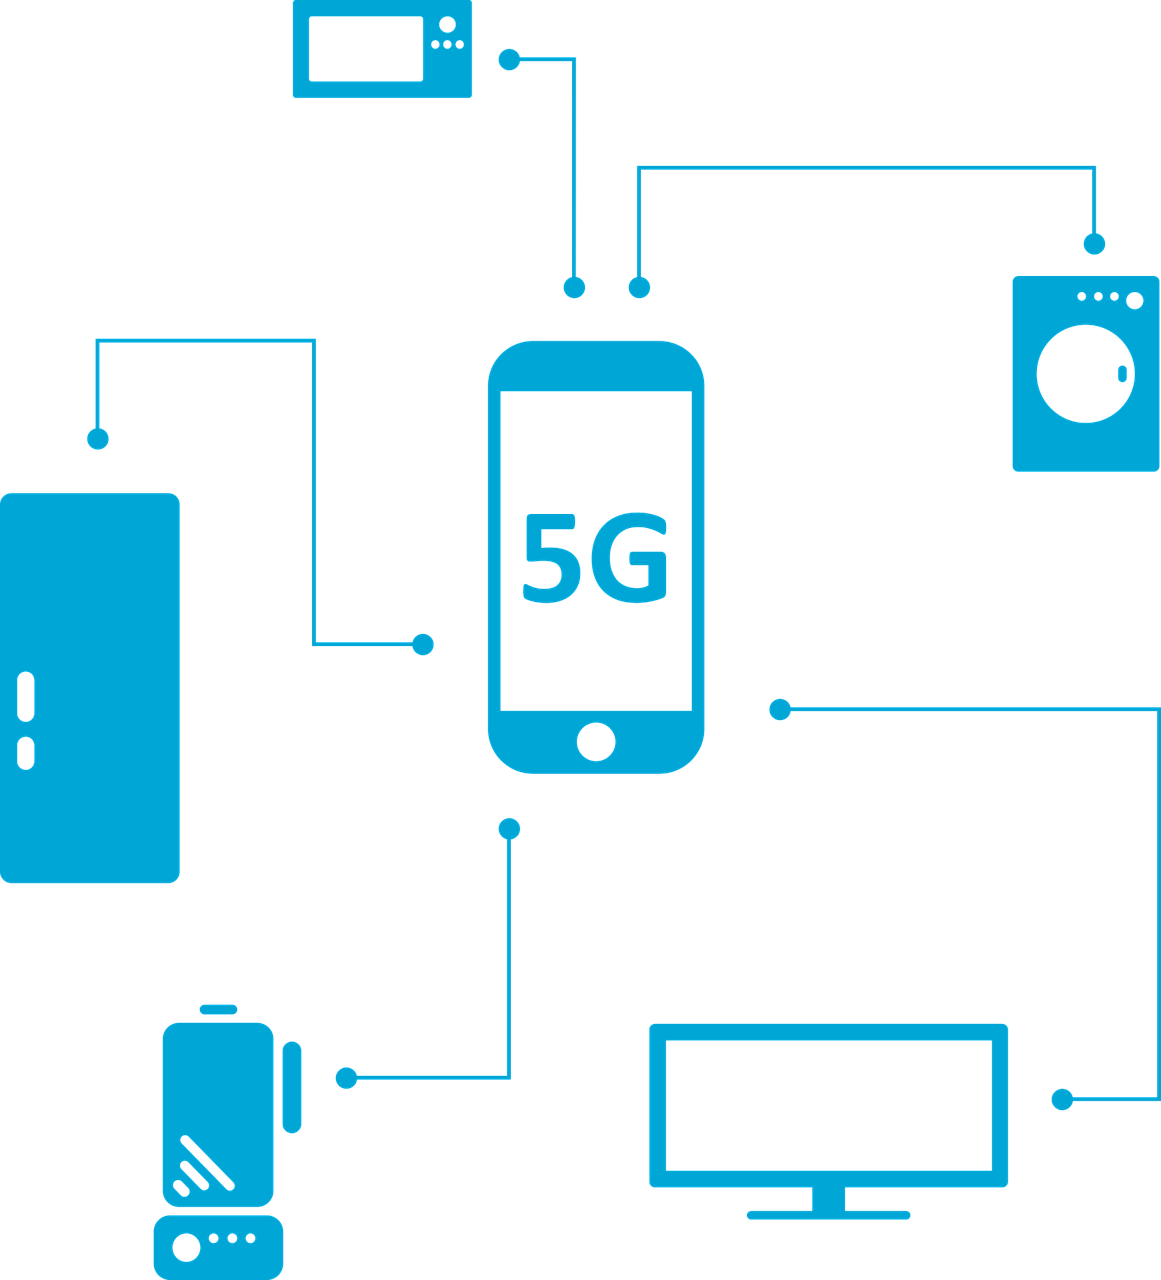 A diagram showing a phone on a 5G network connected to various smart technologies, including a TV, microwave, fridge, battery, and washing machine.